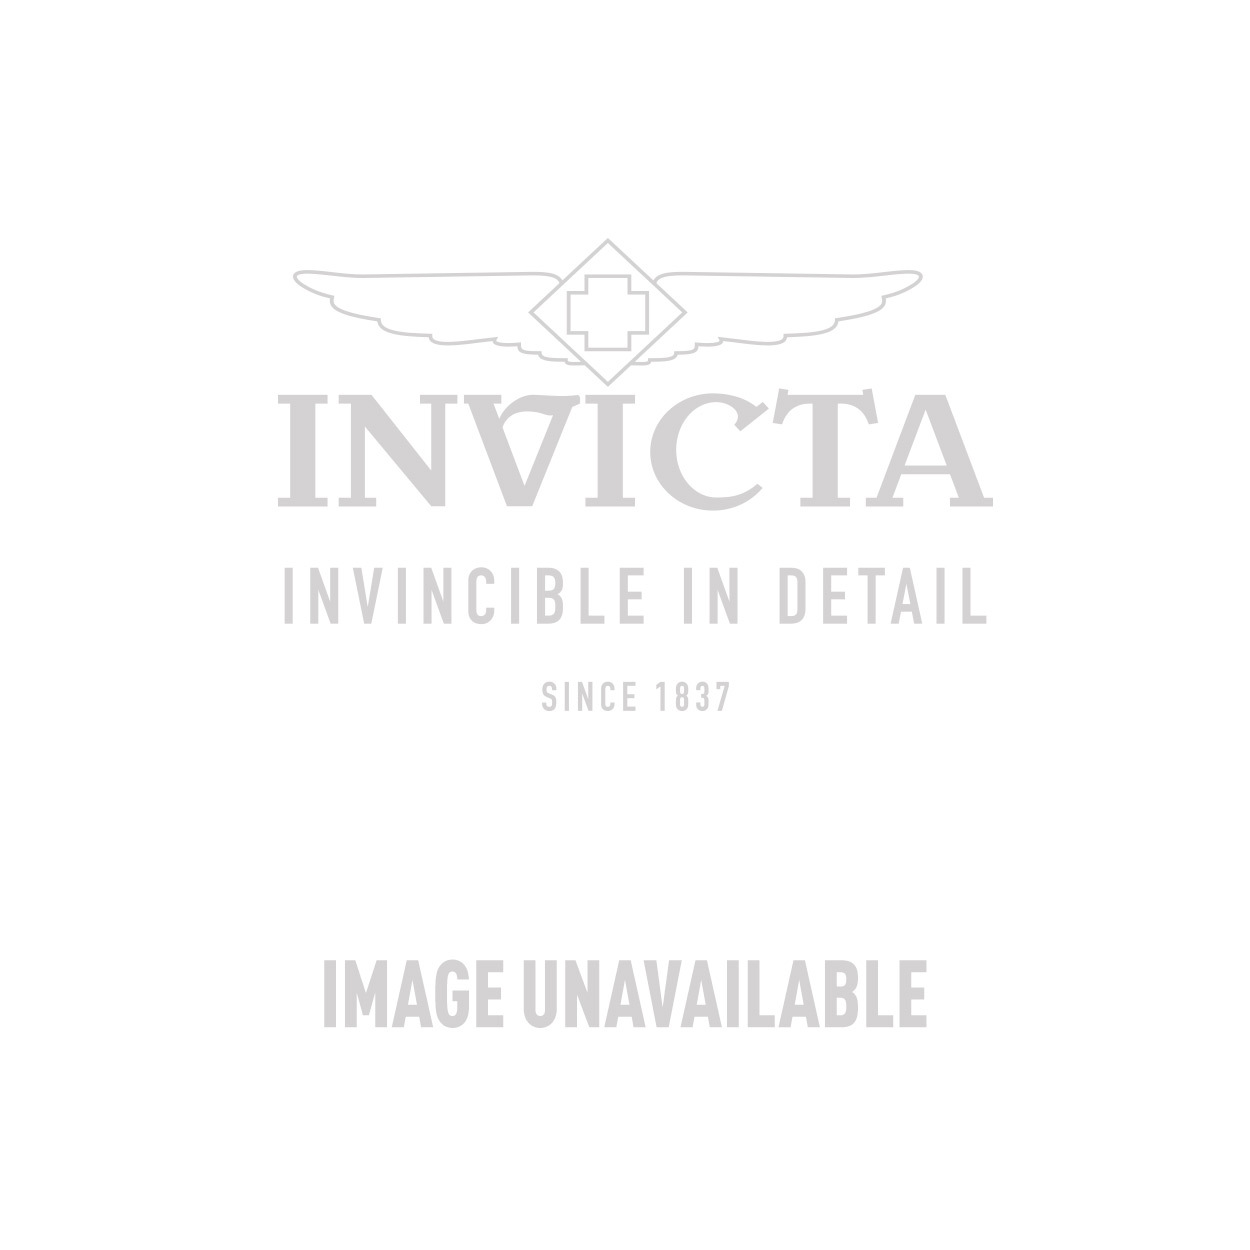 Invicta Bolt Swiss Made Quartz Watch - Blue, Stainless Steel case Stainless Steel band - Model 11038